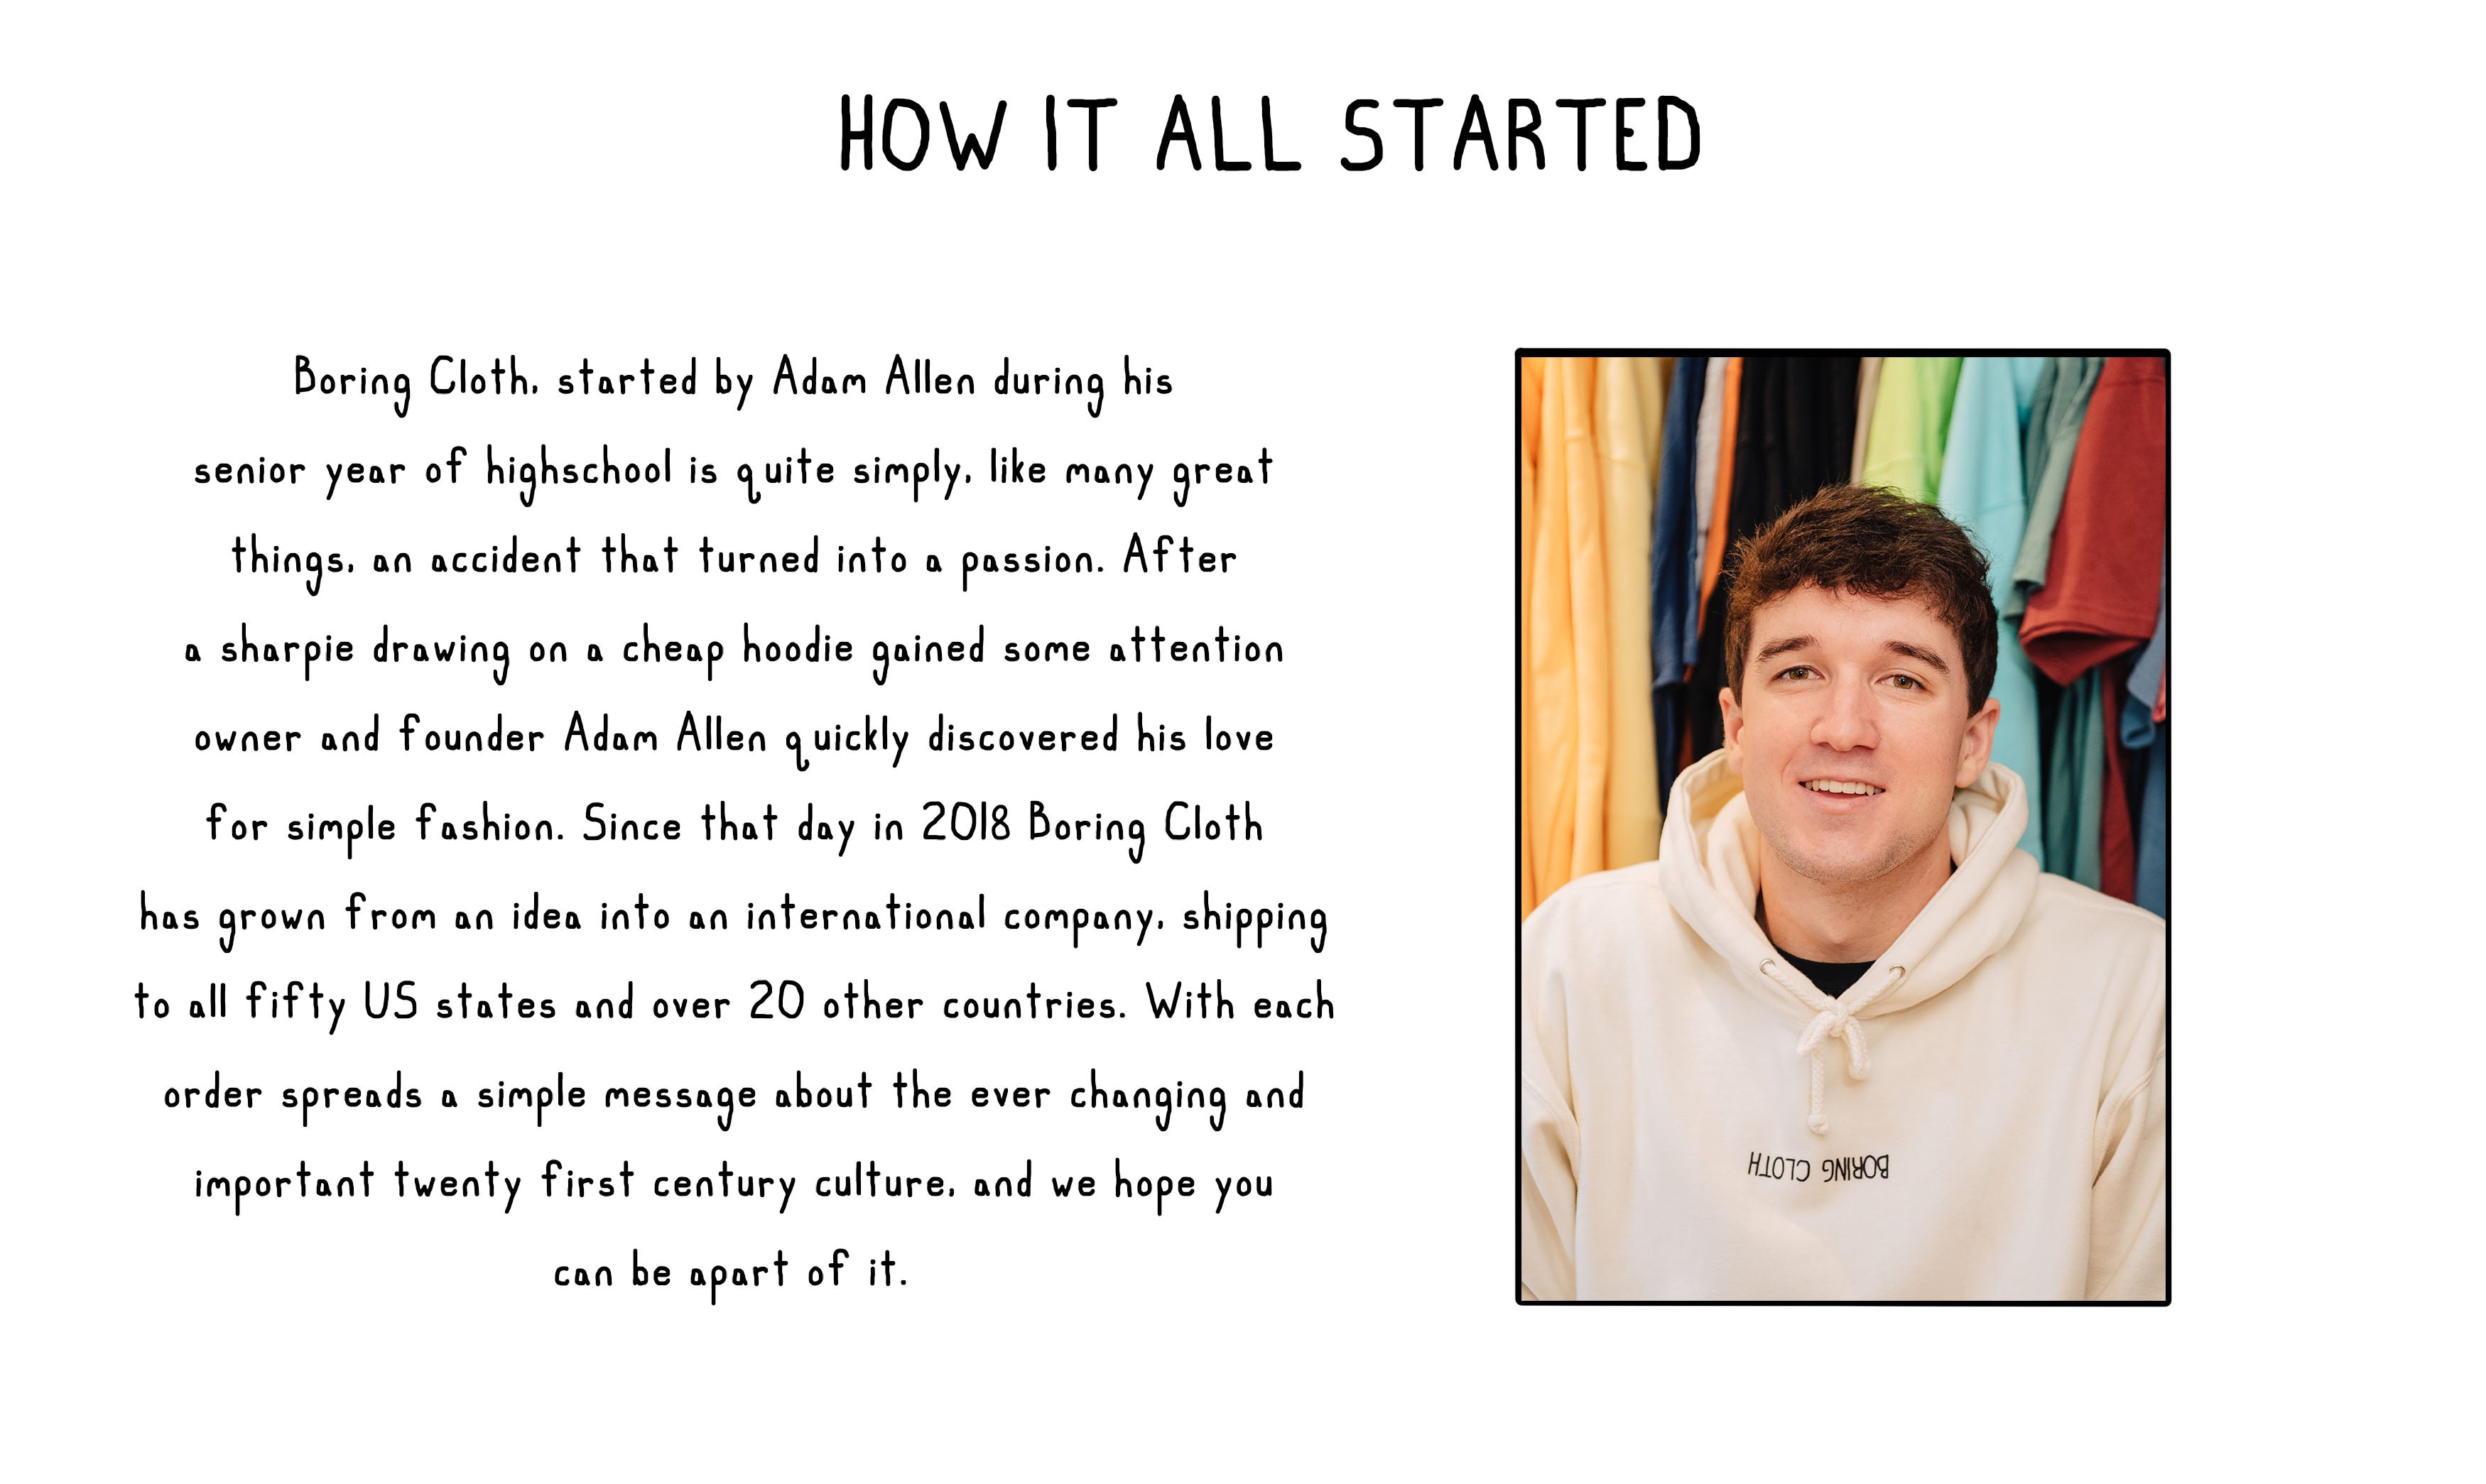 How Boring Cloth Started, Boring Cloth Owner. Boring Cloth, started by Adam Allen during his  senior year of highschool is quite simply, like many great  things, an accident that turned into a passion. After  a sharpie drawing on a cheap hoodie gained some attention  owner and founder Adam Allen quickly discovered his love  for simple fashion. Since that day in 2018 Boring Cloth  has grown from an idea into an international company, shipping  to all fifty US states and over 20 other countries. With each  order spreads a simple message about the ever changing and  important twenty first century culture, and we hope you  can be apart of it.